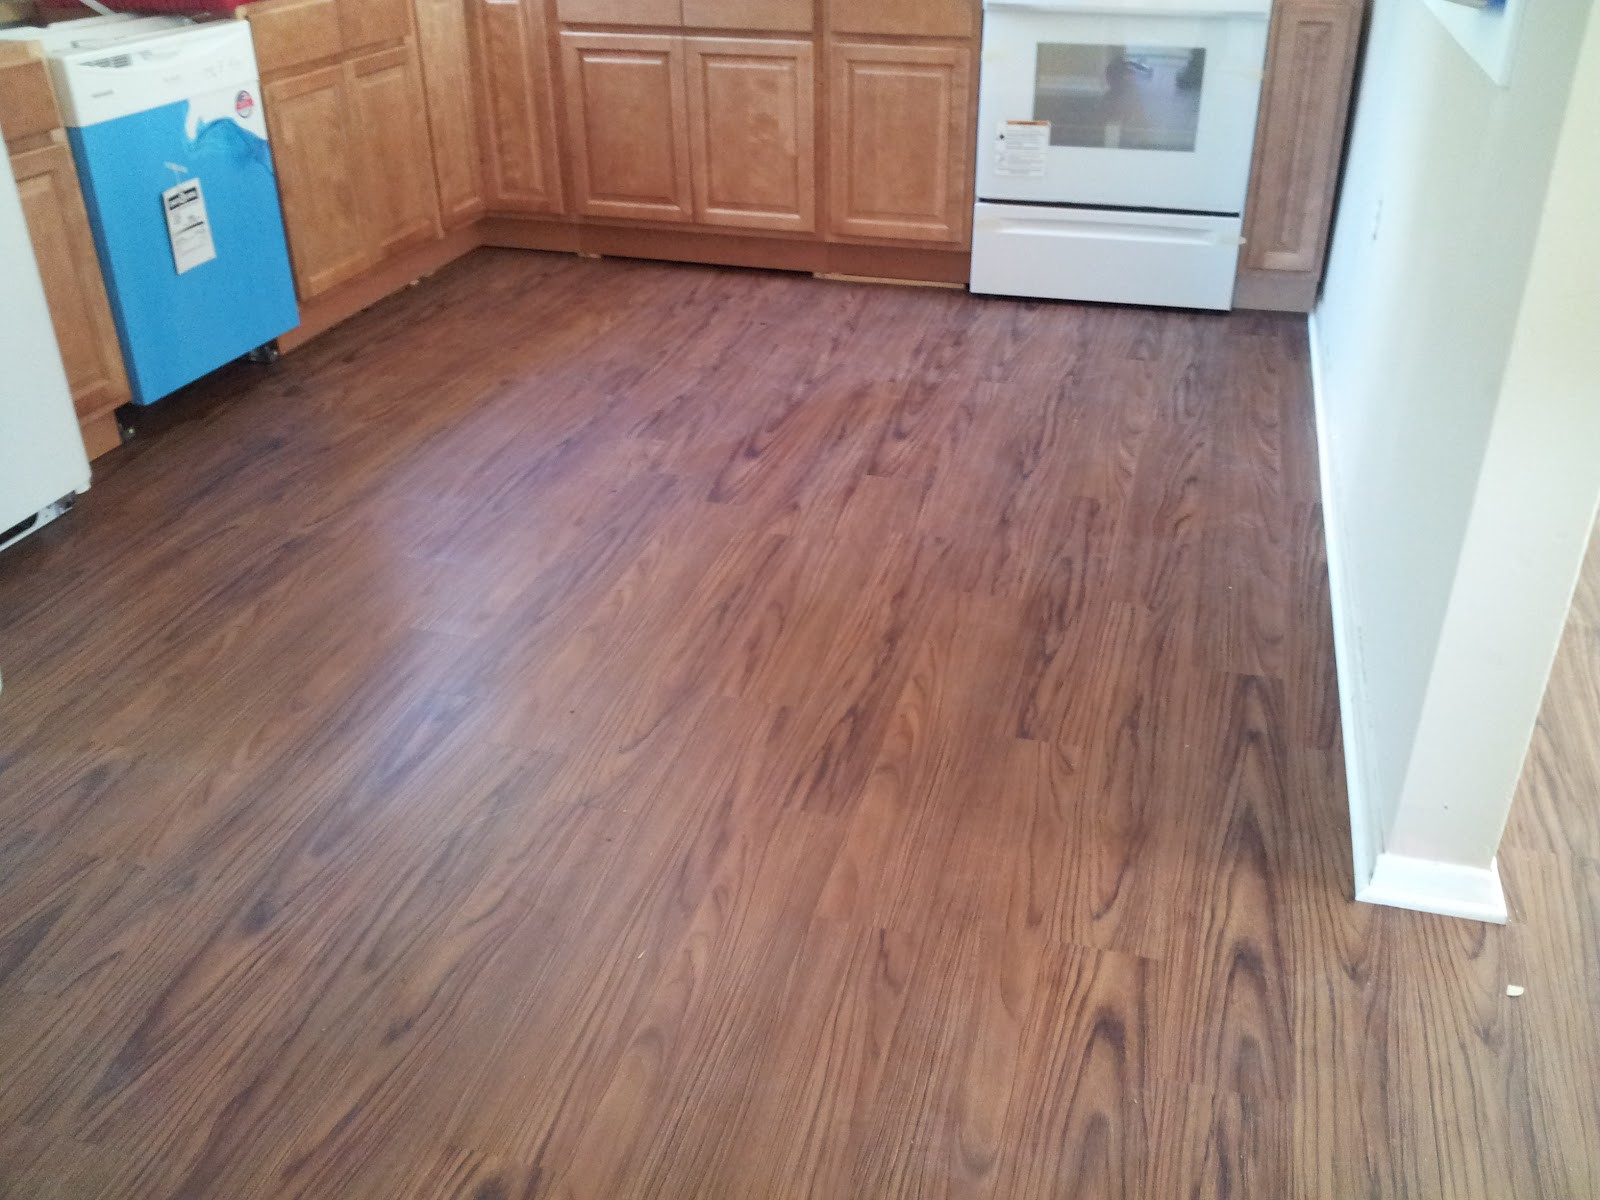 Lowes Bruce Hardwood Floors butterscotch Of Floor Installation Photos Wood Looking Vinyl Floor In Feasterville Inside Floor Installation Photos